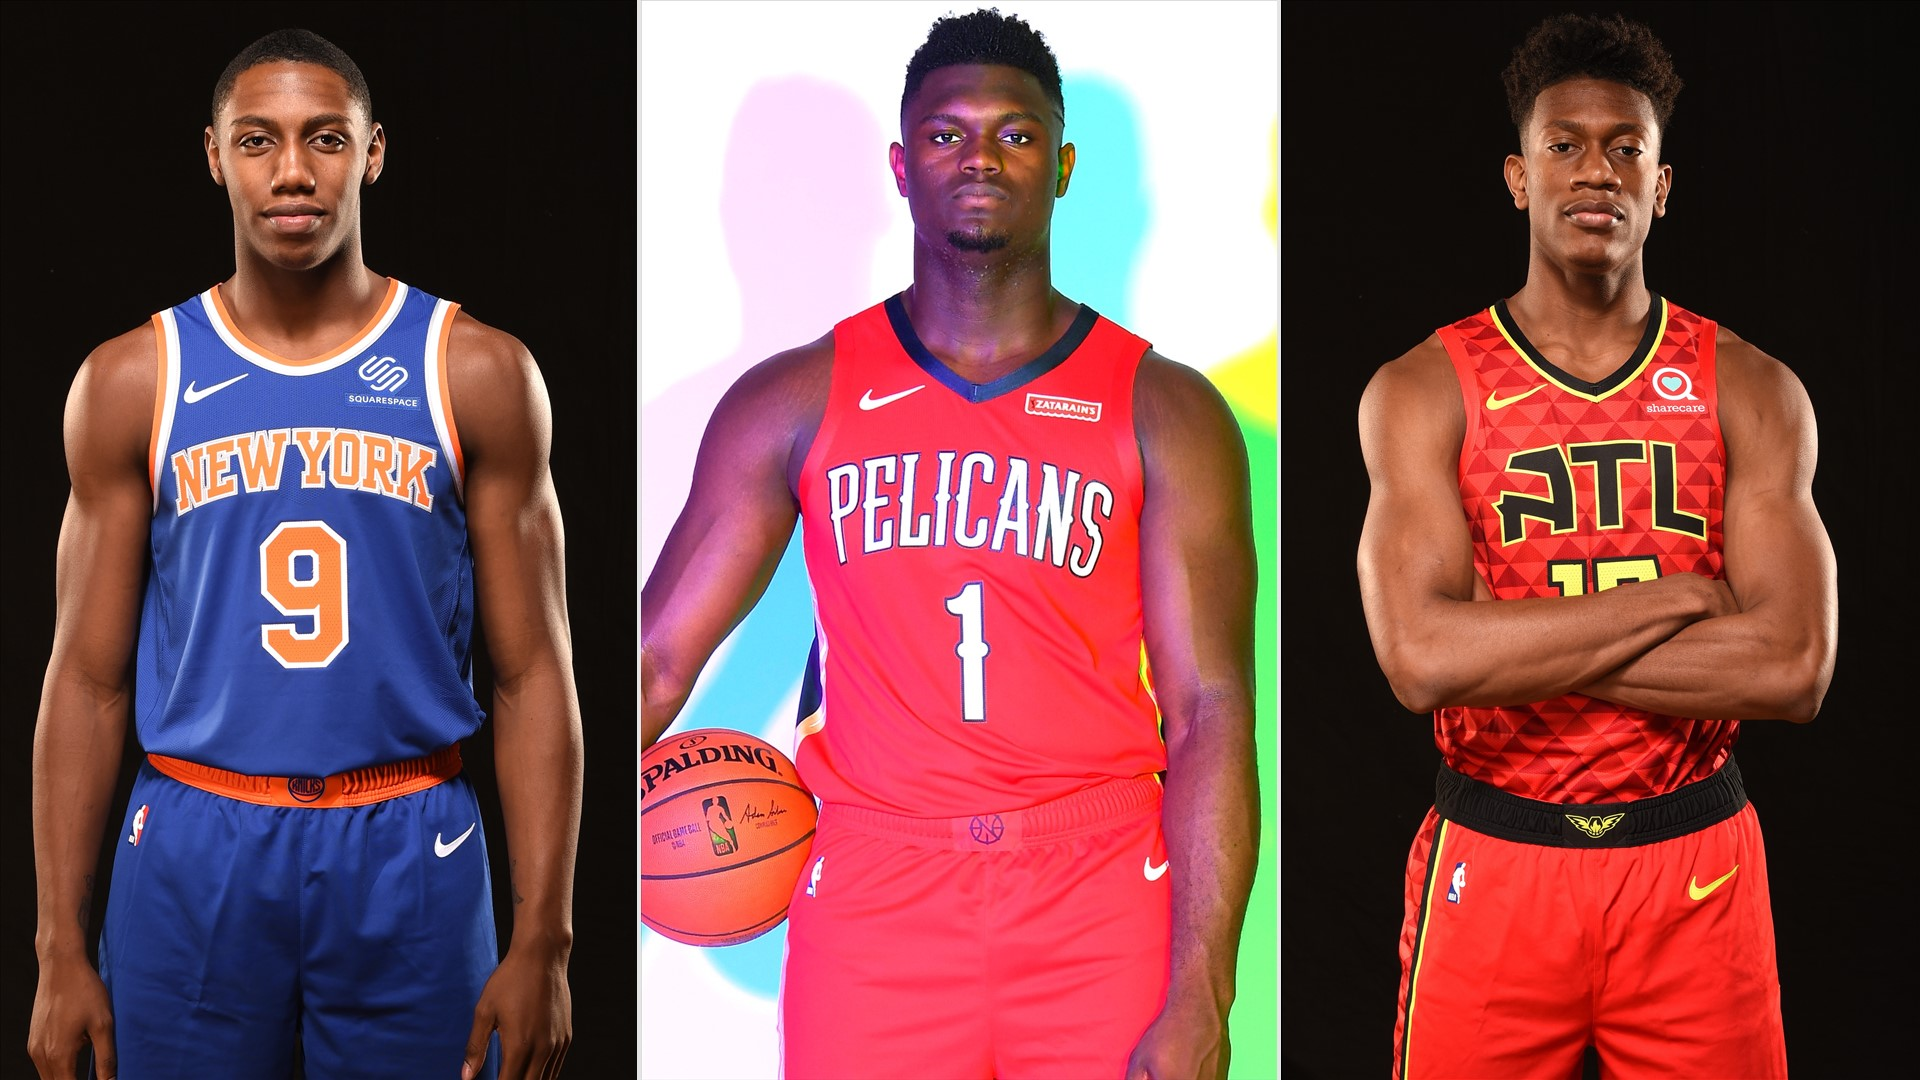 Best Sights And Sounds From The 2019 Nba Rookie Photo Shoot Nba